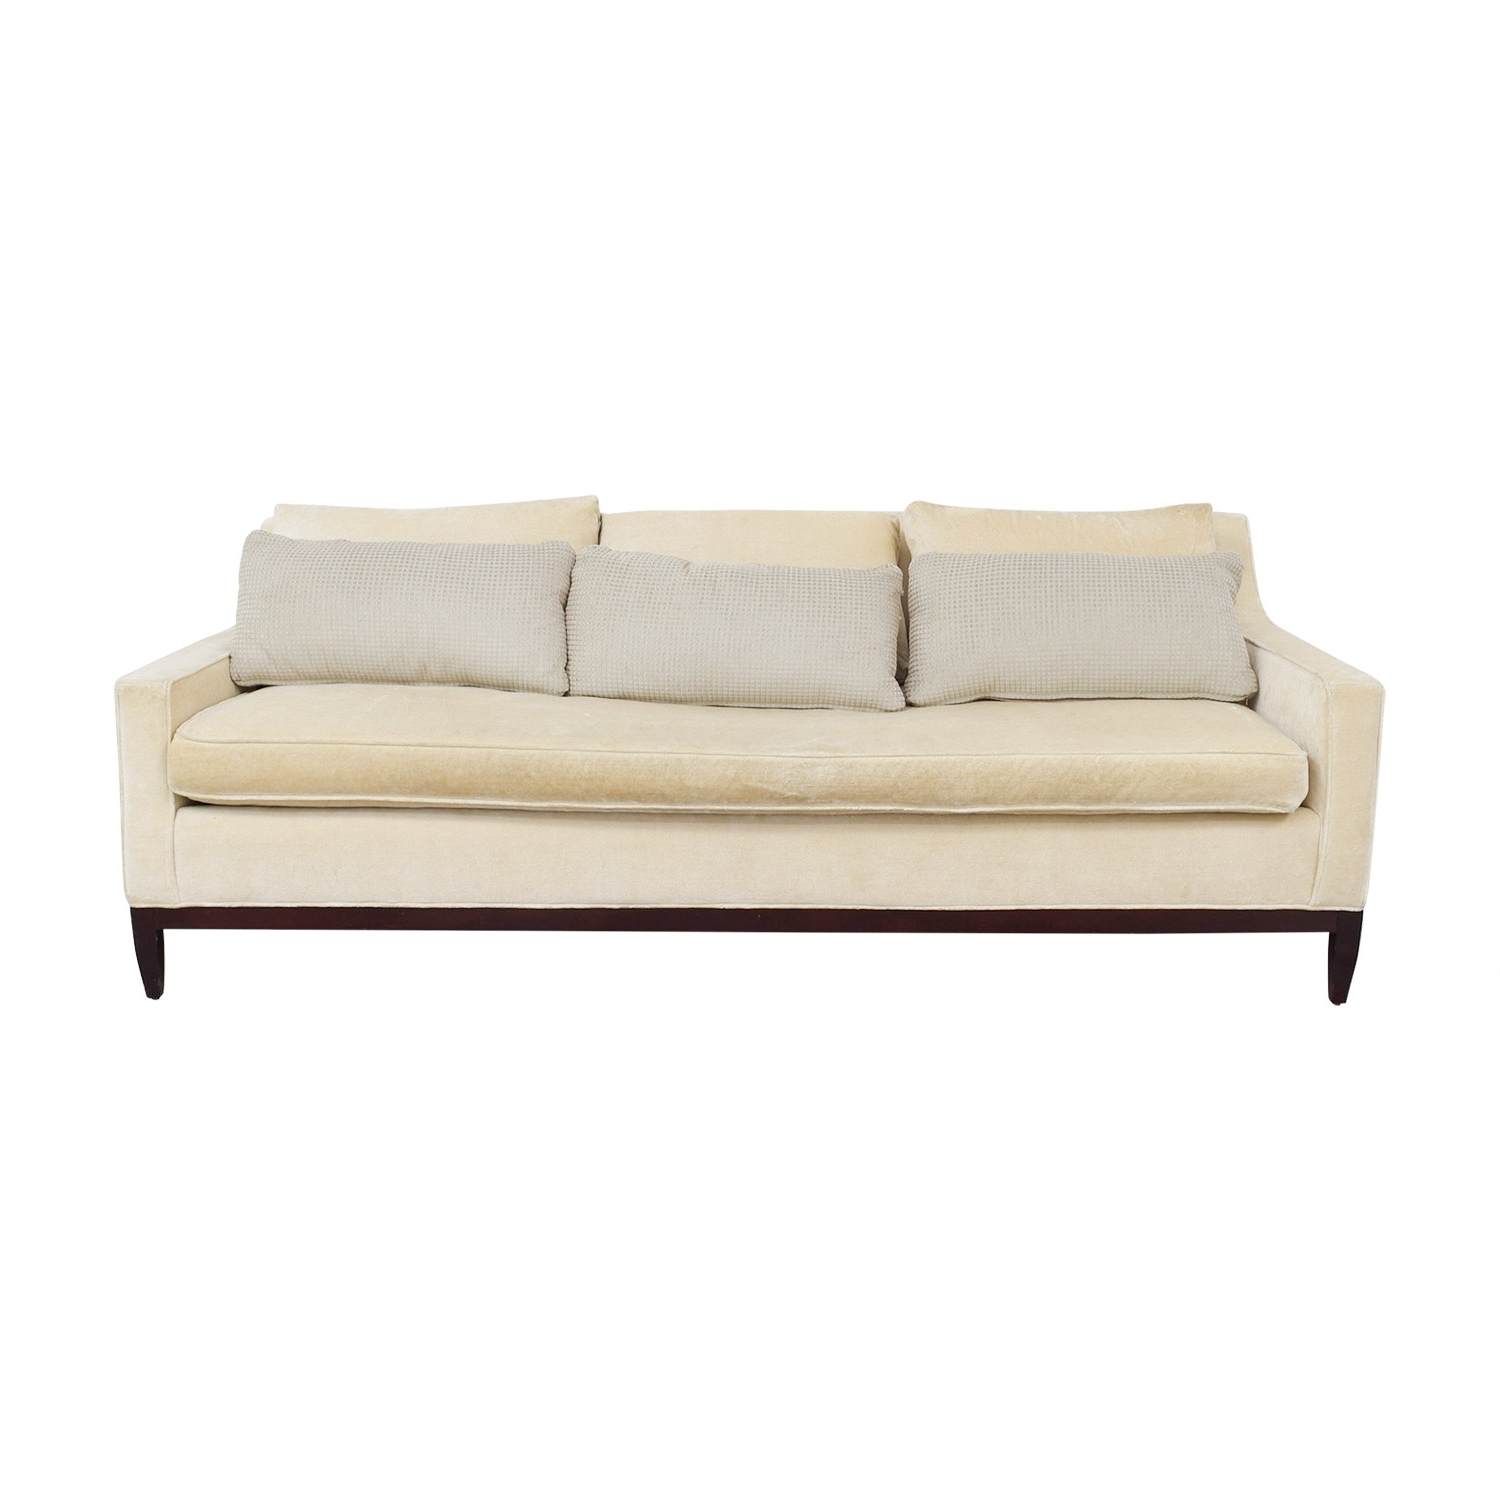 [%90% Off – Vintage Mid Century White Single Cushion Sofa / Sofas Throughout Most Recent Single Sofas|Single Sofas With Favorite 90% Off – Vintage Mid Century White Single Cushion Sofa / Sofas|Preferred Single Sofas Throughout 90% Off – Vintage Mid Century White Single Cushion Sofa / Sofas|Best And Newest 90% Off – Vintage Mid Century White Single Cushion Sofa / Sofas Inside Single Sofas%] (View 3 of 20)